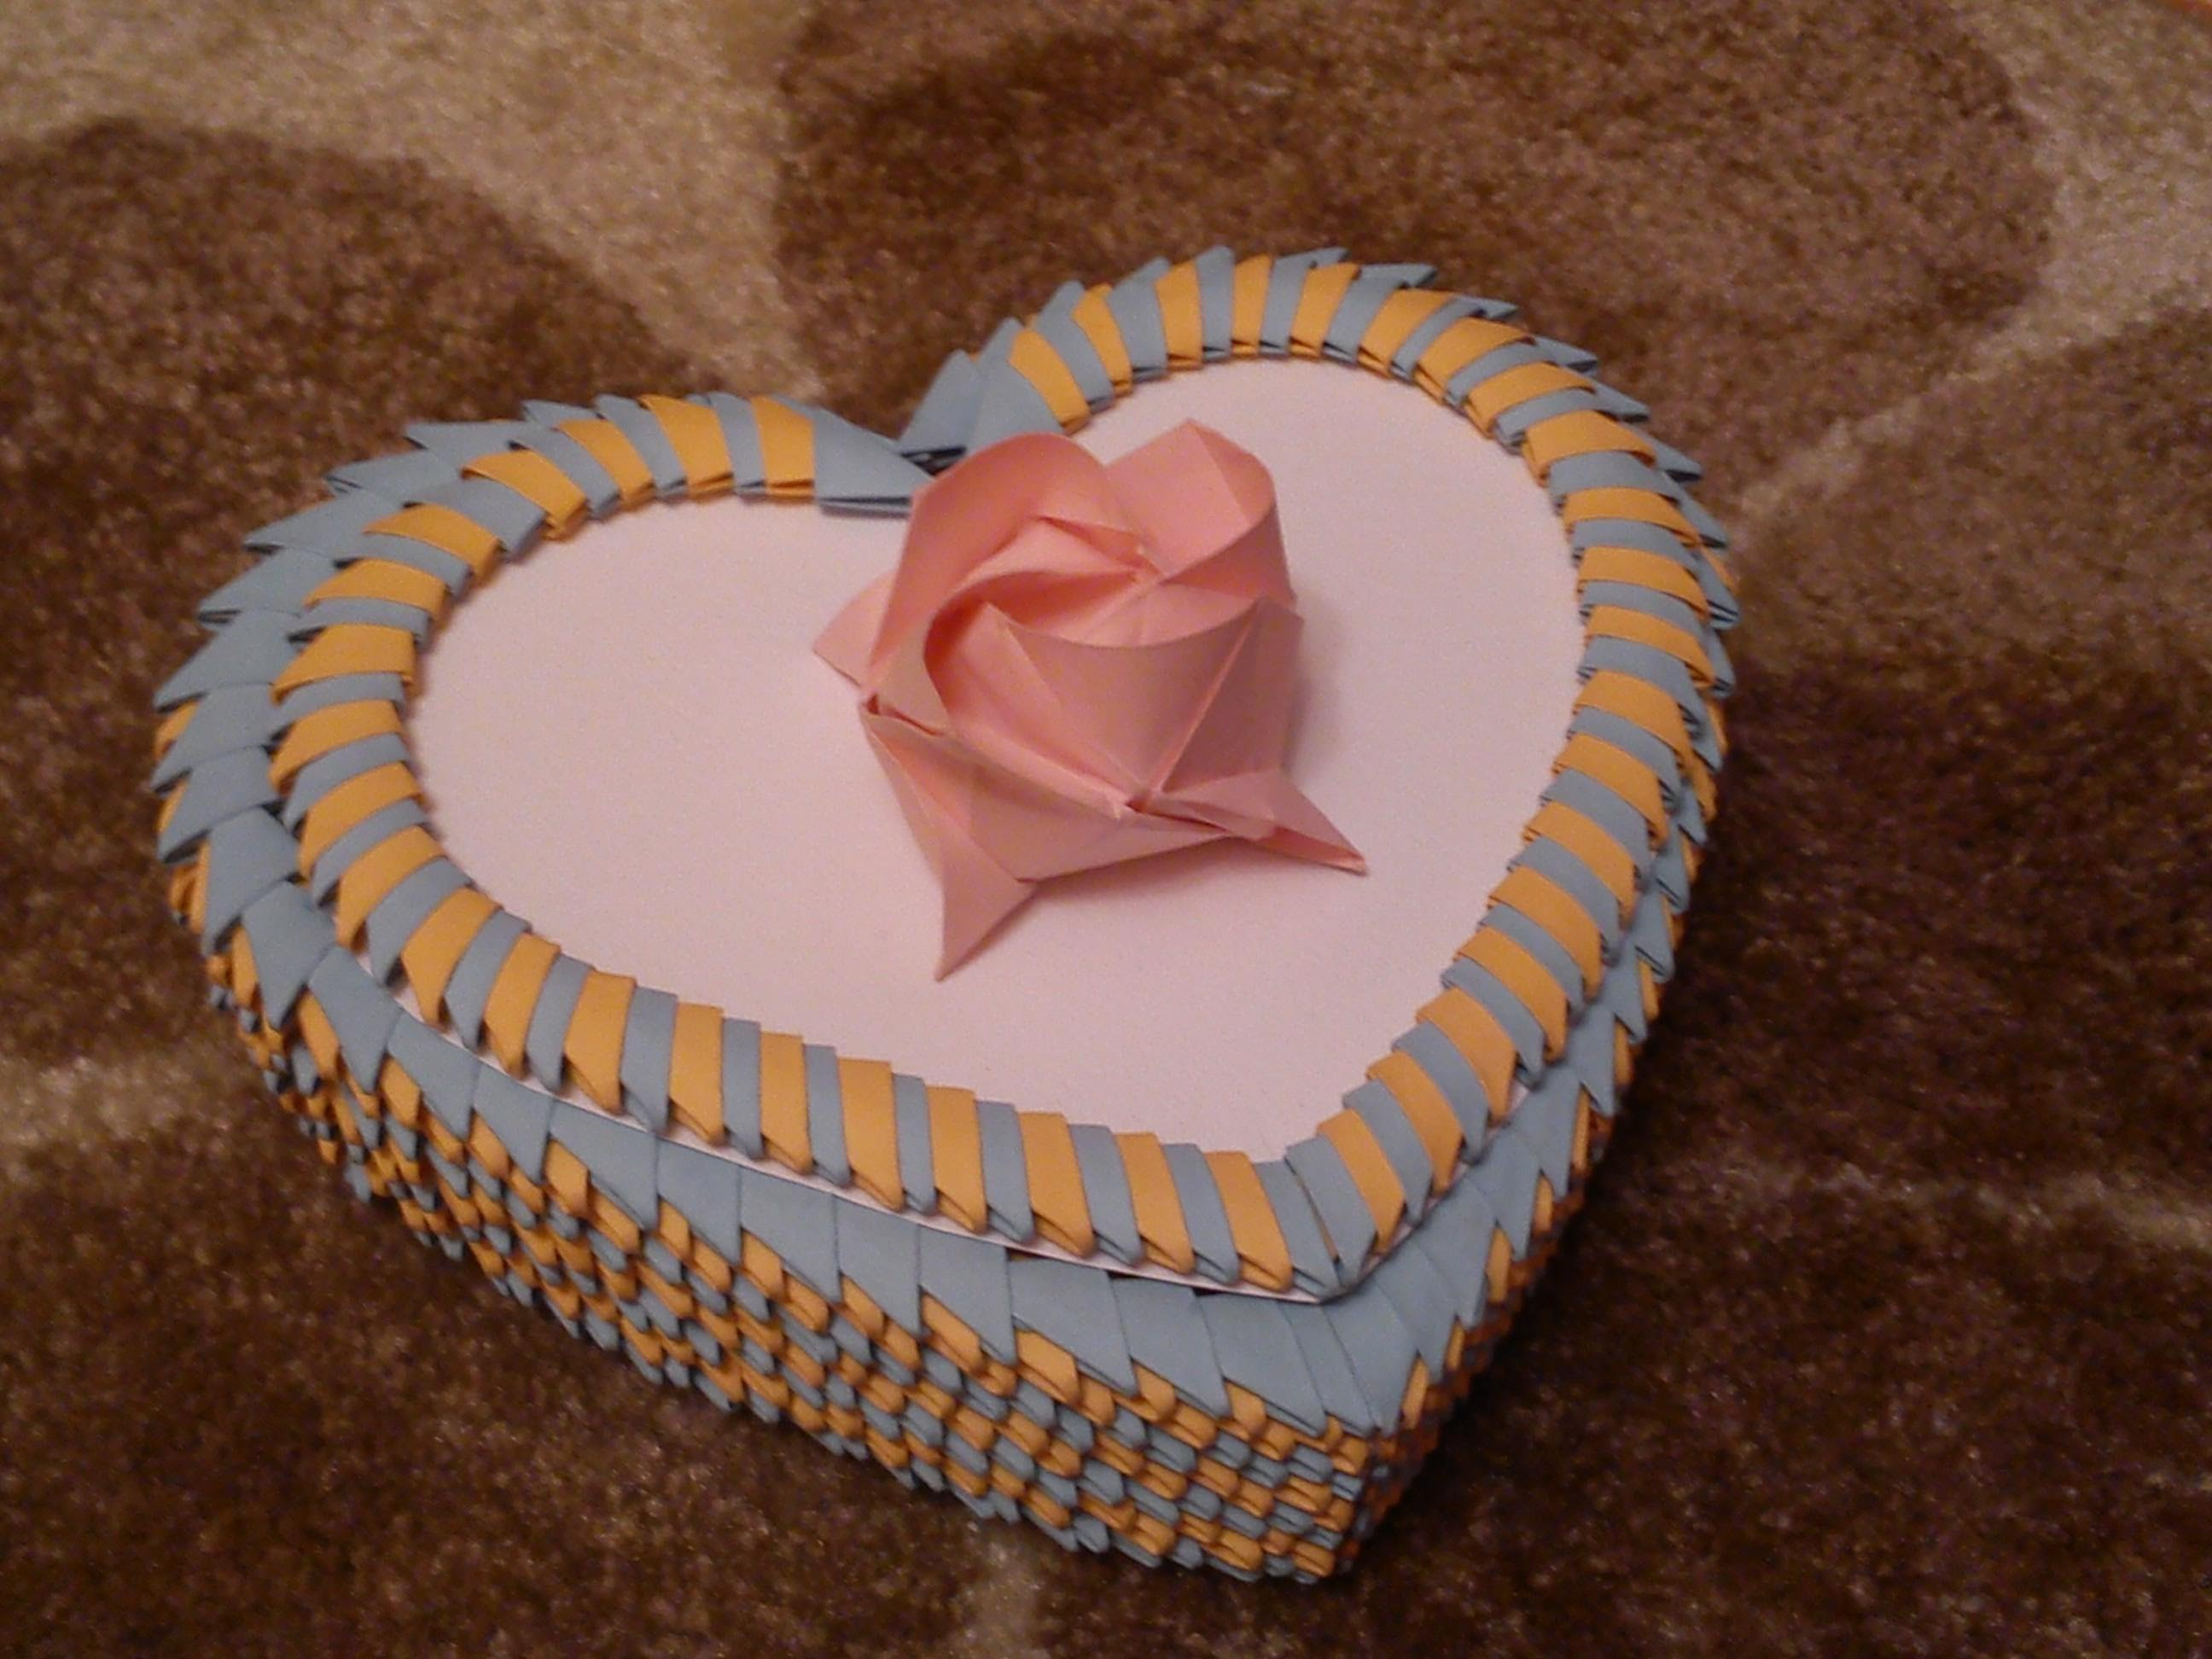 How To Make 3D Origami Heart Jewellery Storage Box Step By DIY Tutorial Instructions